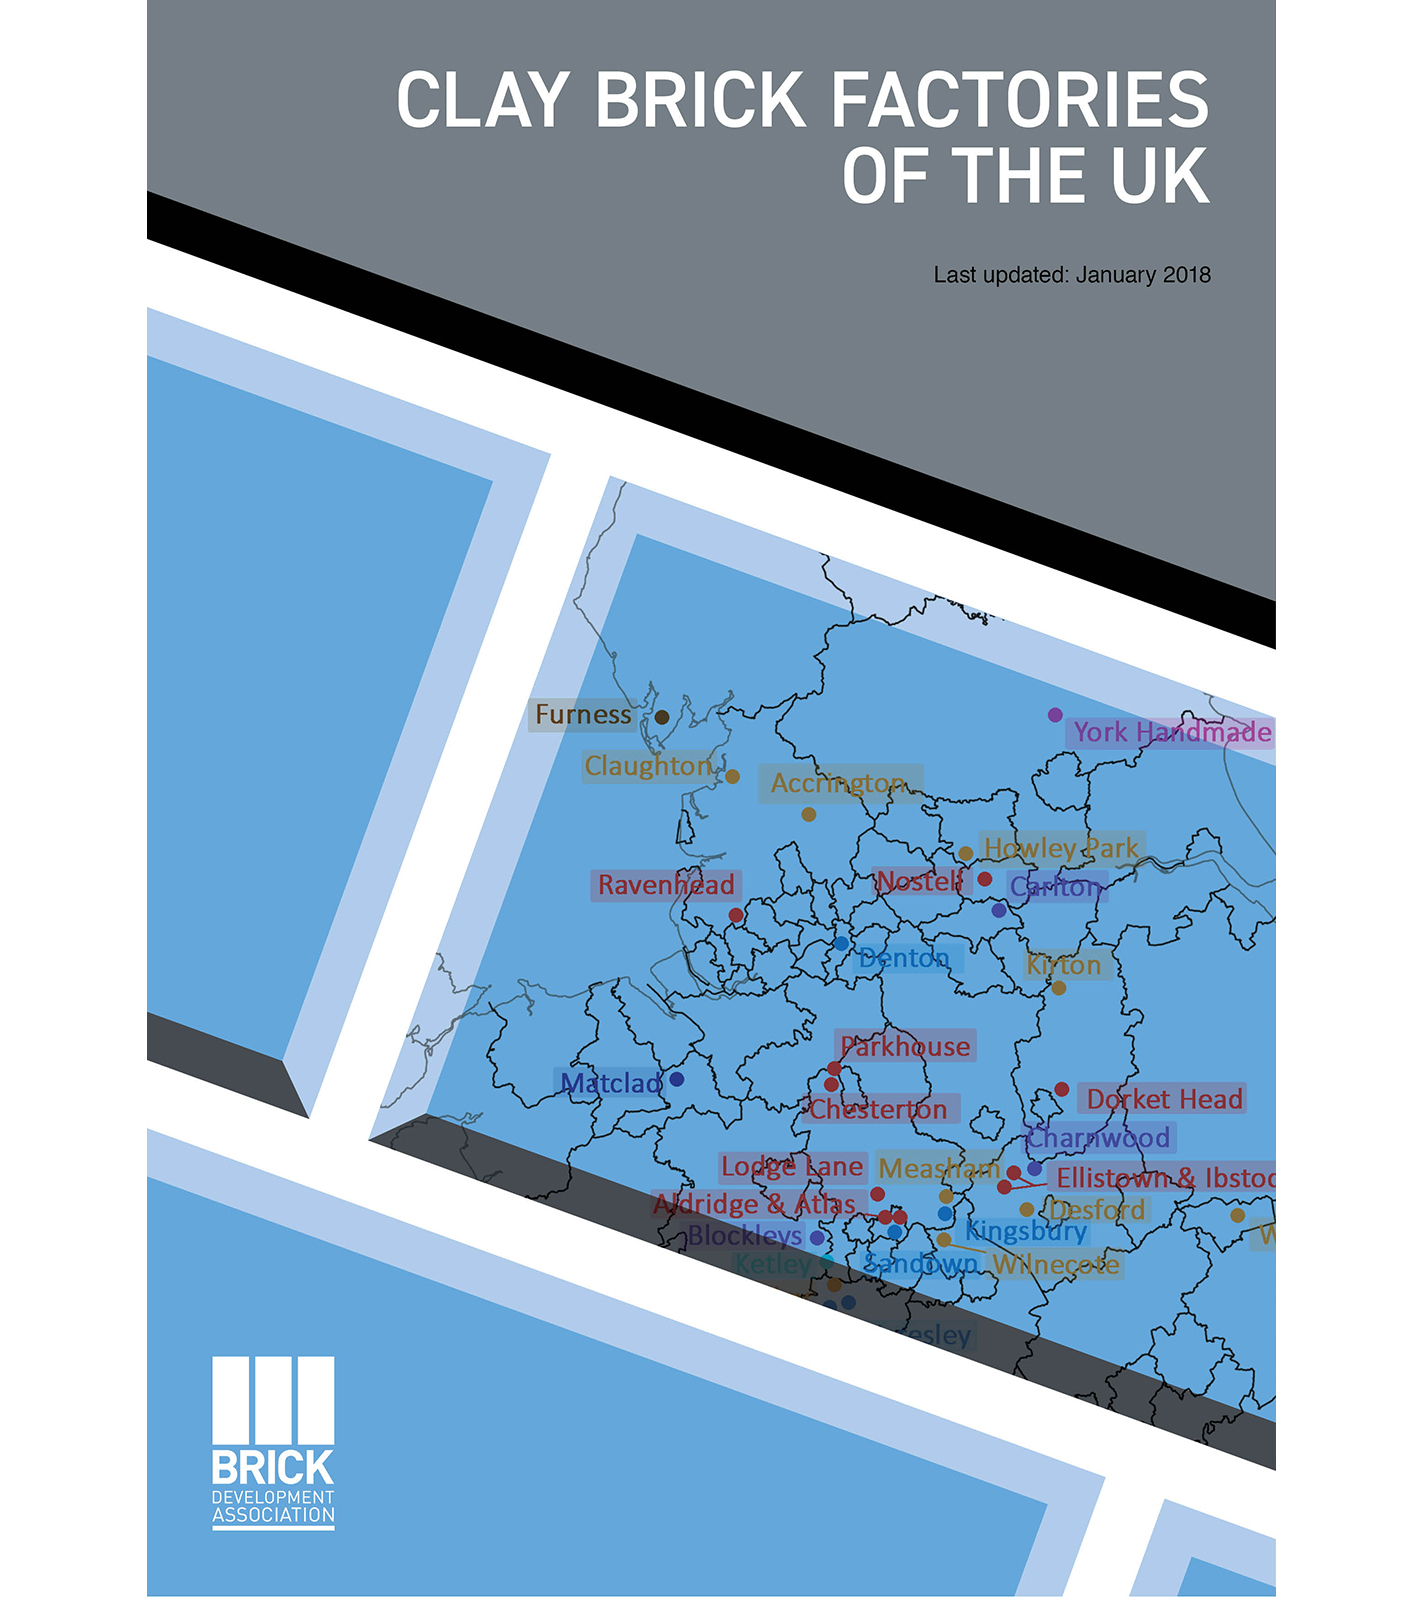 CLAY BRICK FACTORIES OF THE UK